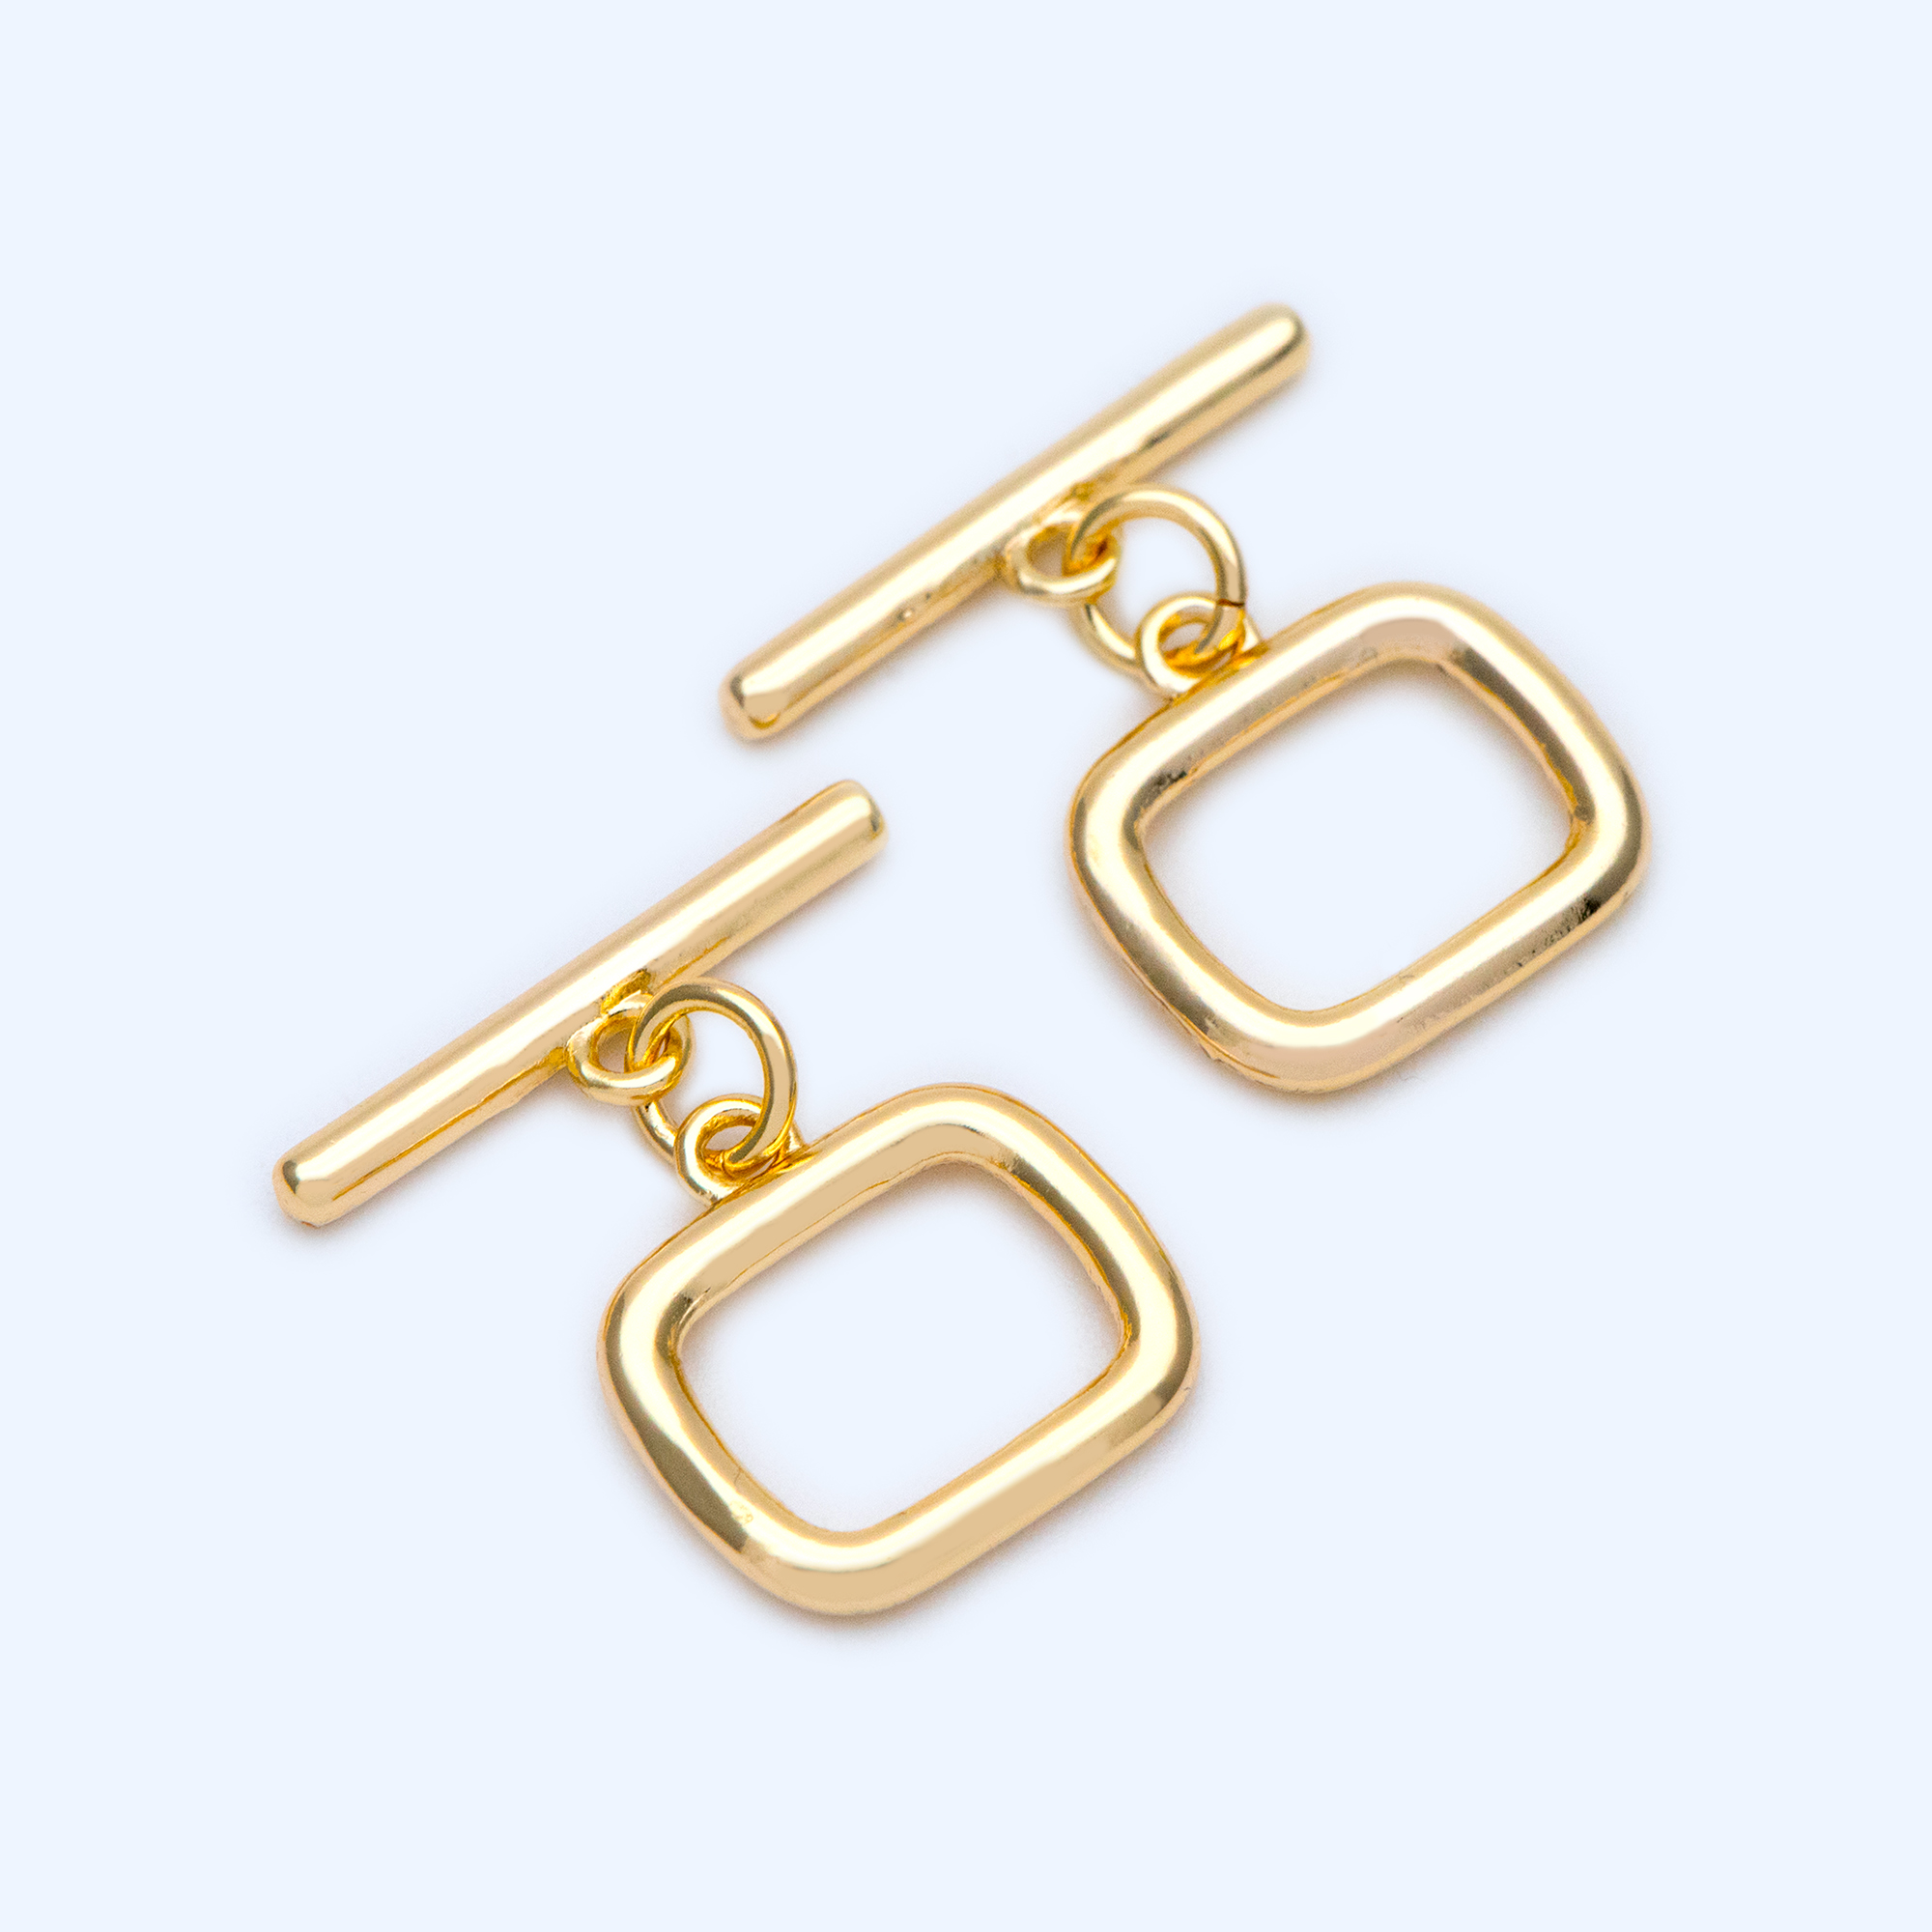 10pcs Gold Simple Square Toggle Clasp, Jewelry Clasp, 18K Gold Filled, Close Clasp (GB-1228)